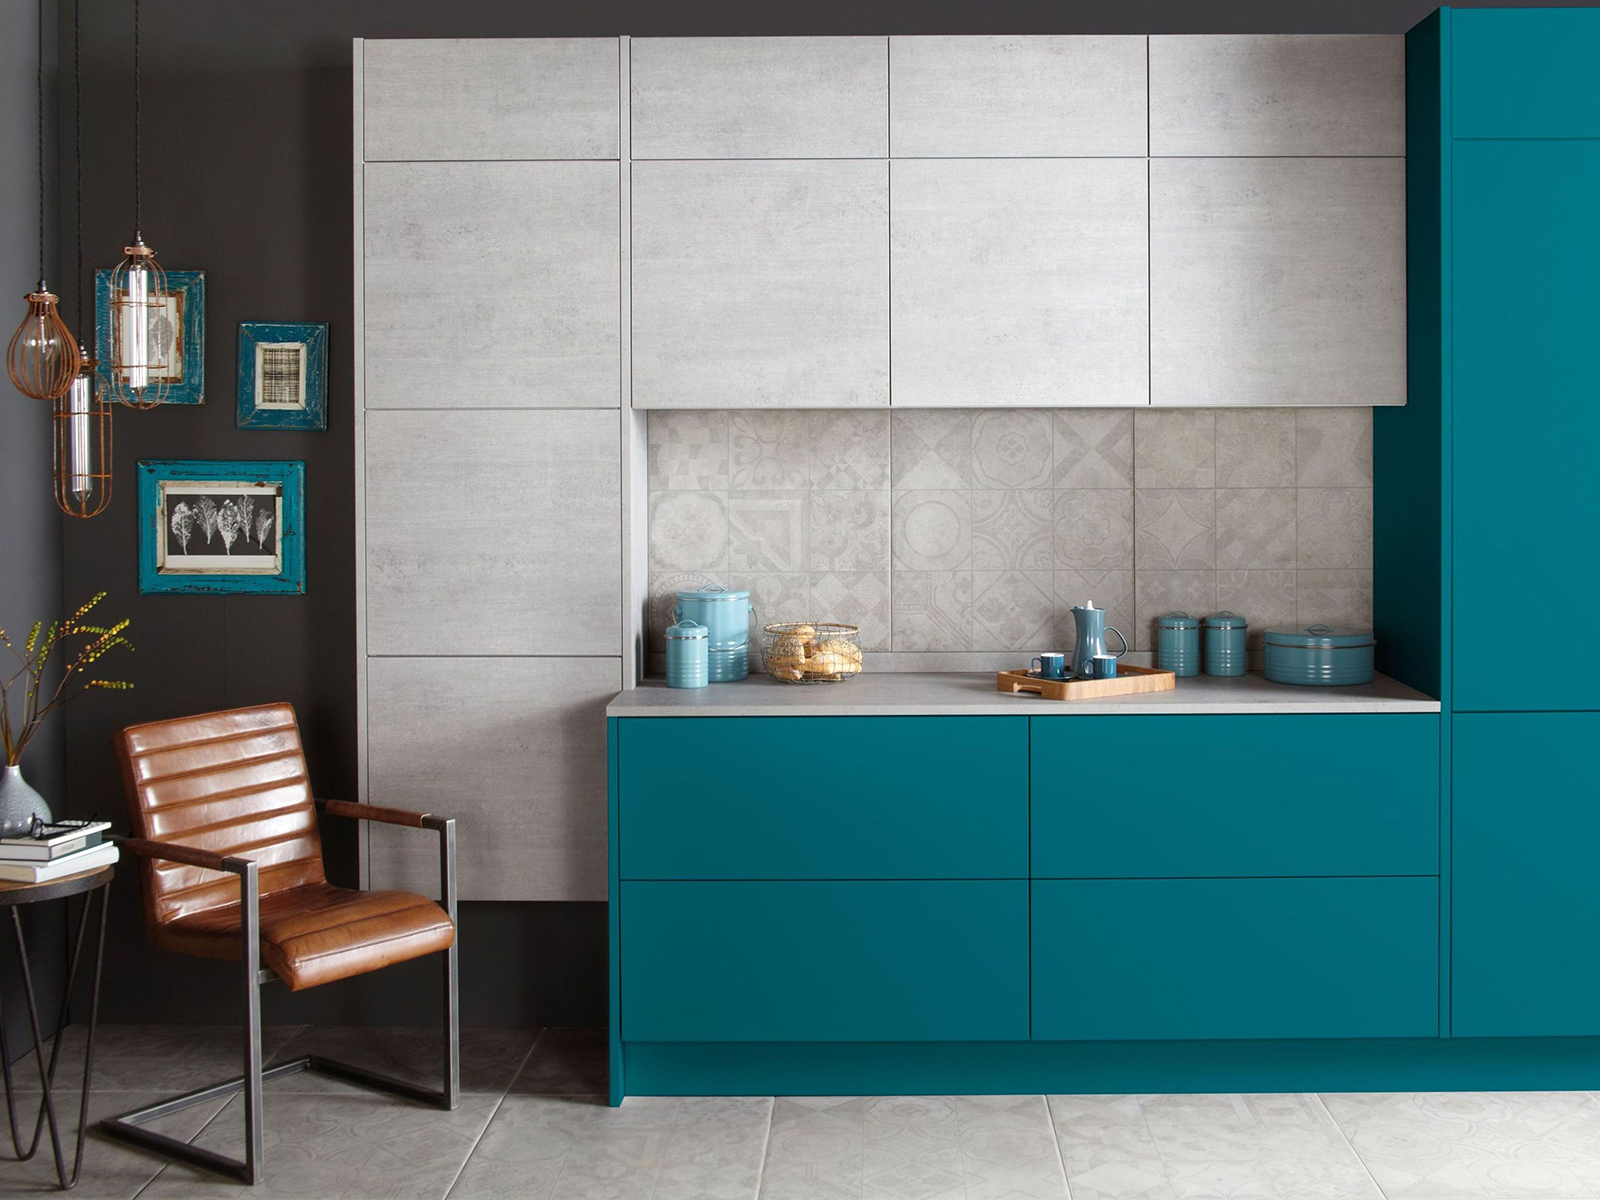 Otto kitchen In Bespoke Painted Teal And Concrete is on trend for interior design